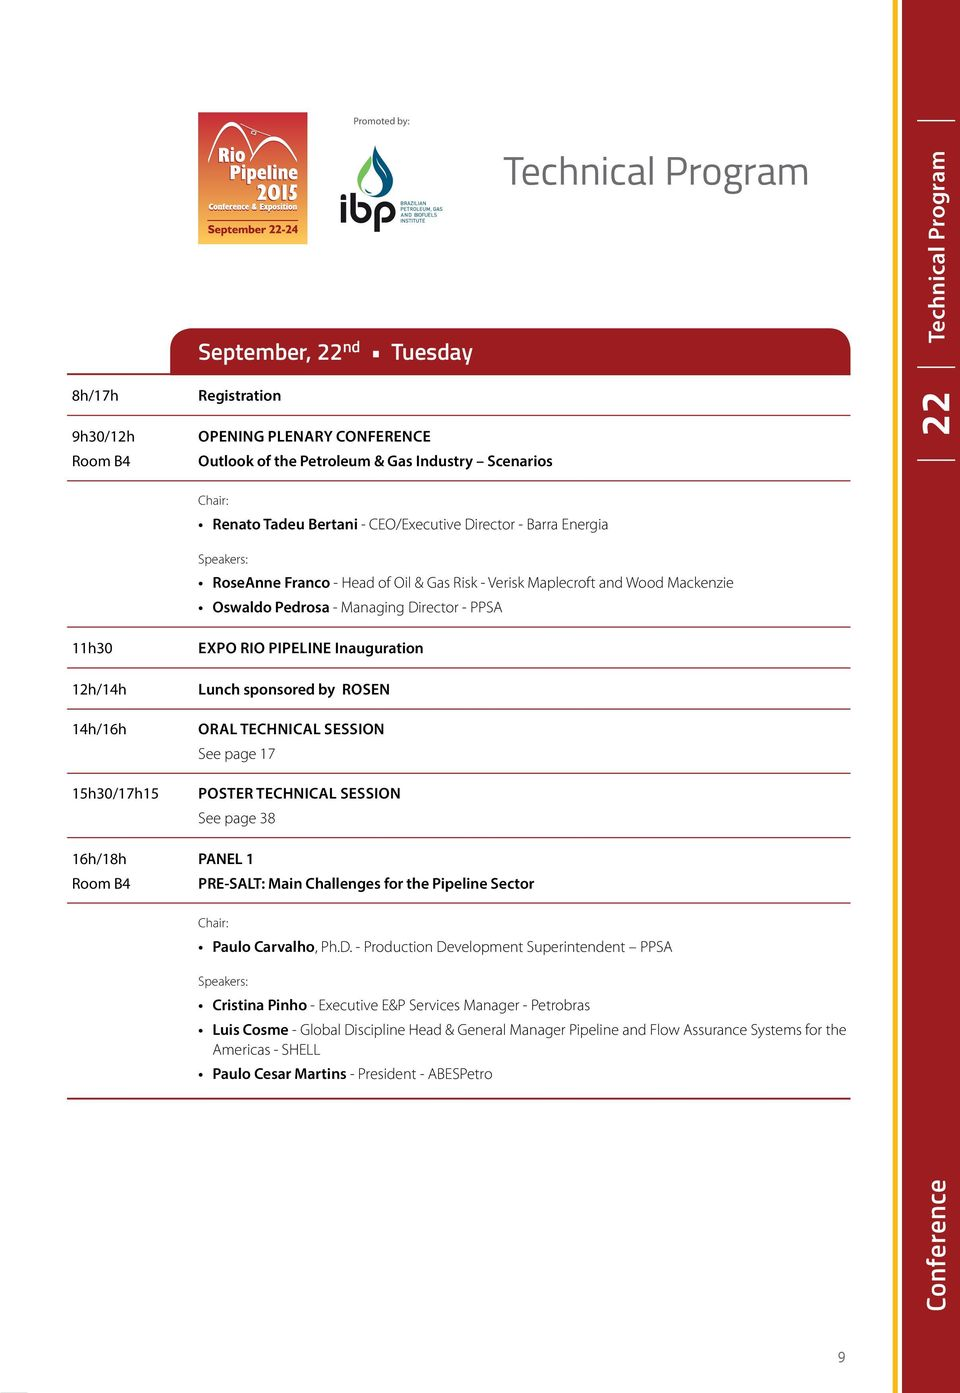 Pedrosa - Managing Director - PPSA Expo Rio Pipeline Inauguration Lunch sponsored by ROSEN ORAL Technical Session See page 17 POSTER Technical Session See page 38 16h/18h PANEL 1 Room B4 PRE-SALT: